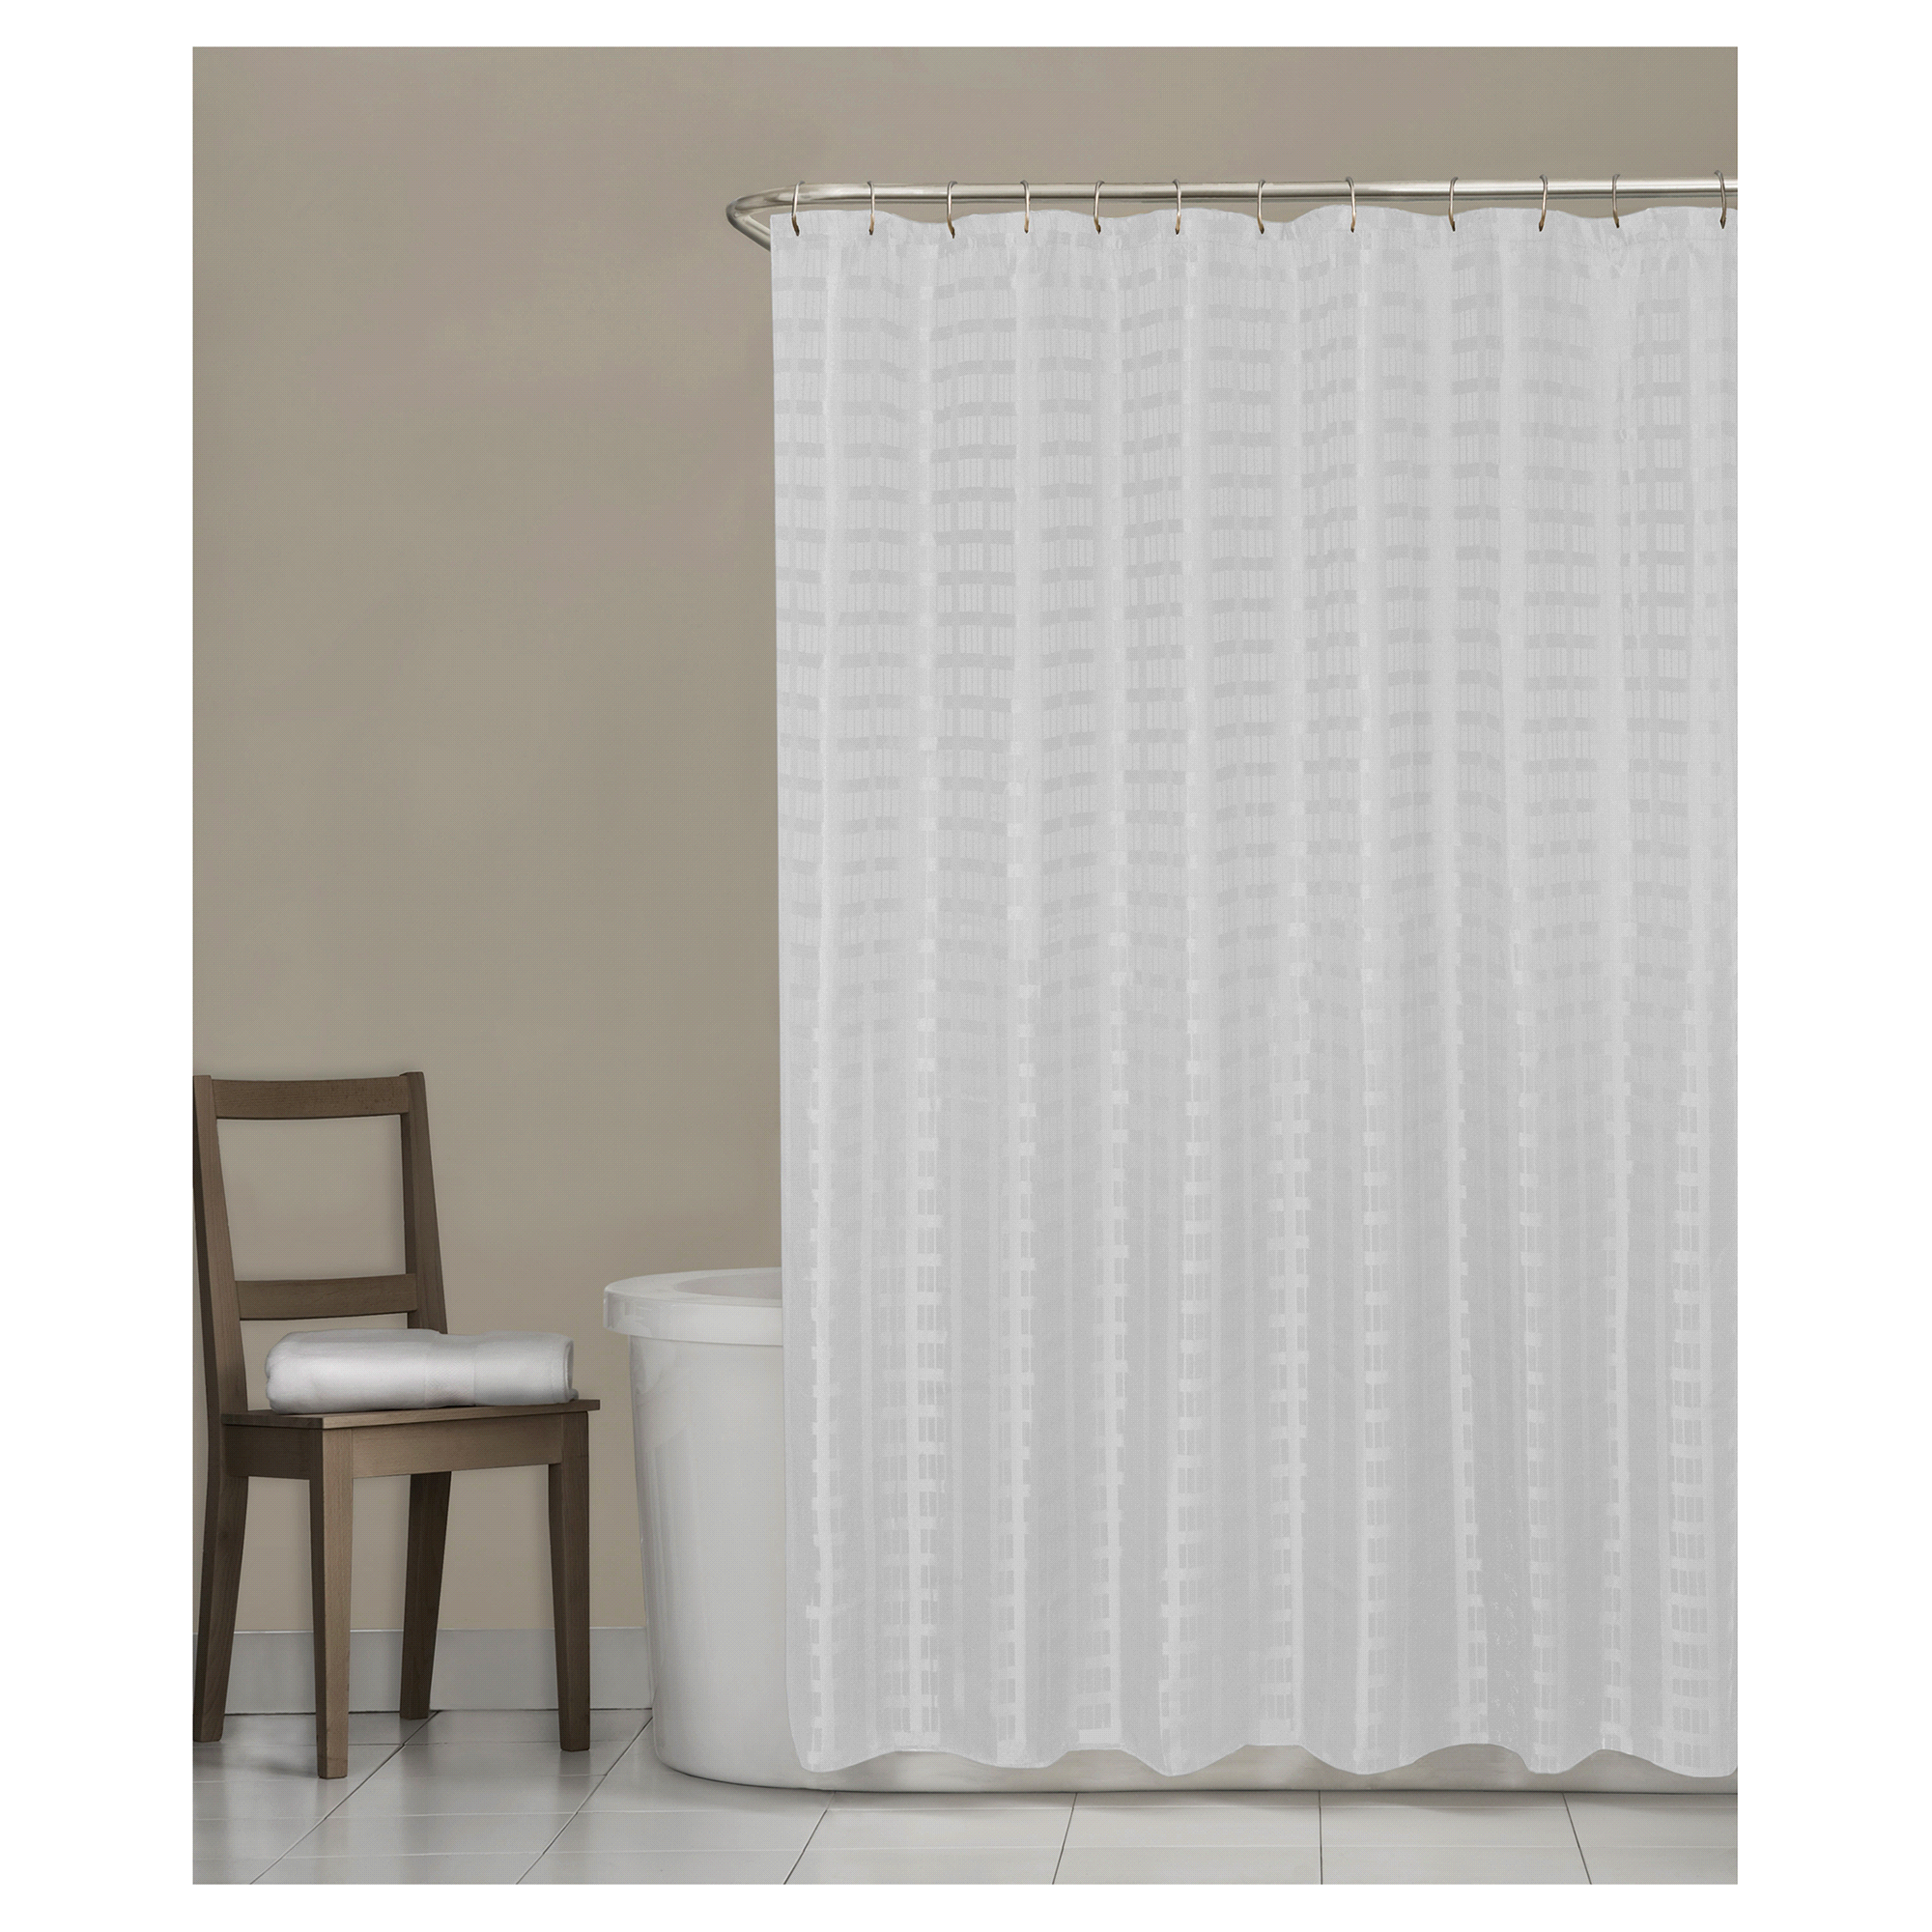 Mustache shower curtain - Mustache Shower Curtain 43